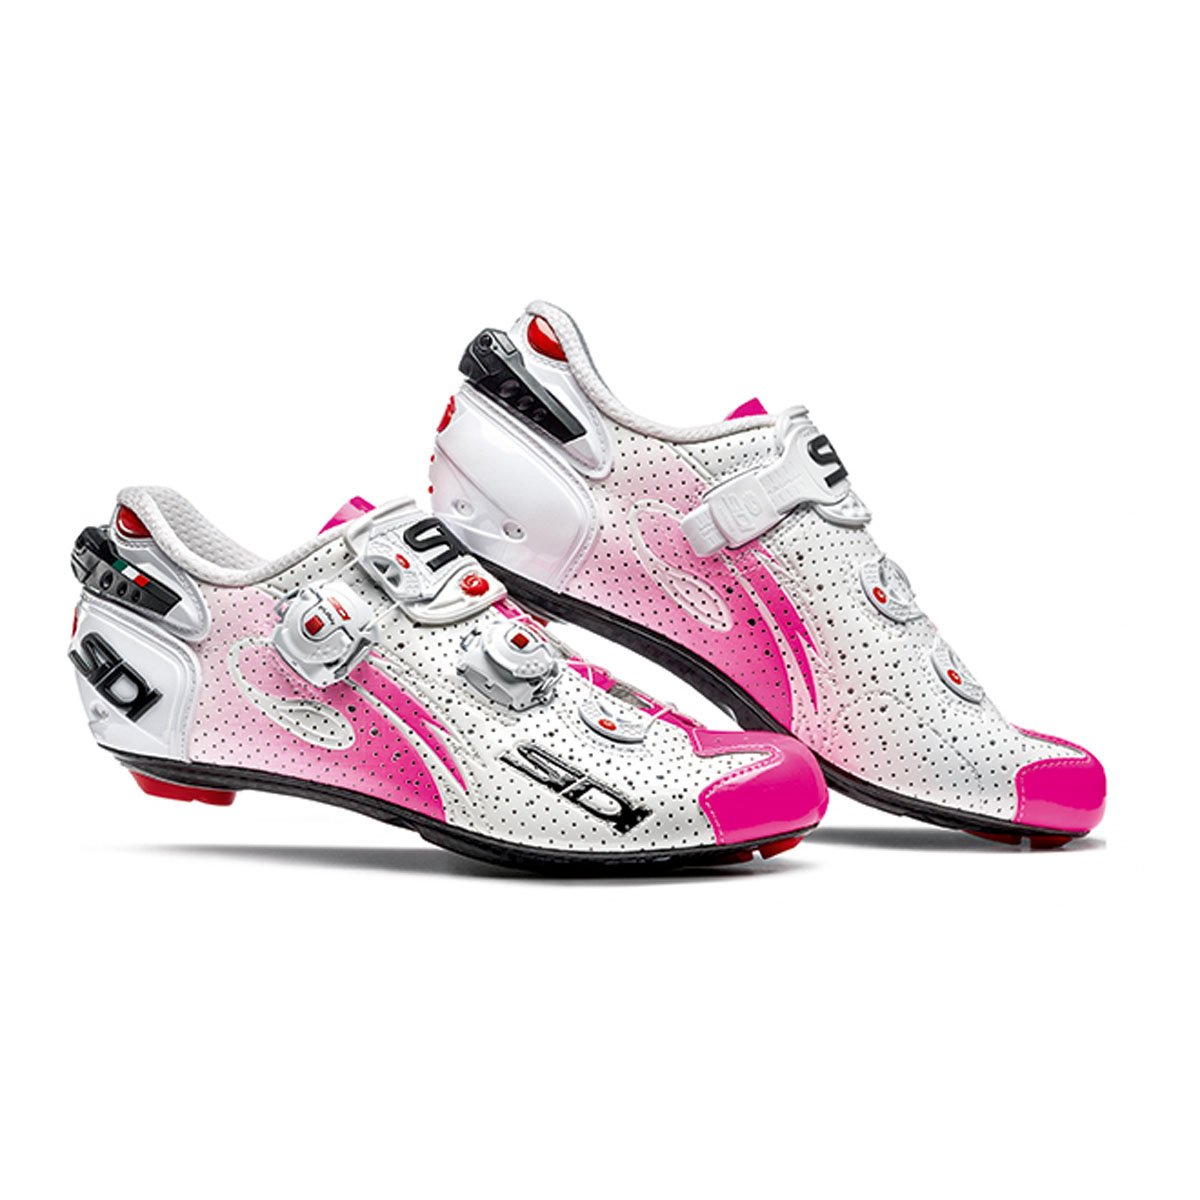 Sidi メンズ SRS-WWA-WHLB-41 B01AU6YU0Y 39 M EU|White/Pink Fluo White/Pink Fluo 39 M EU